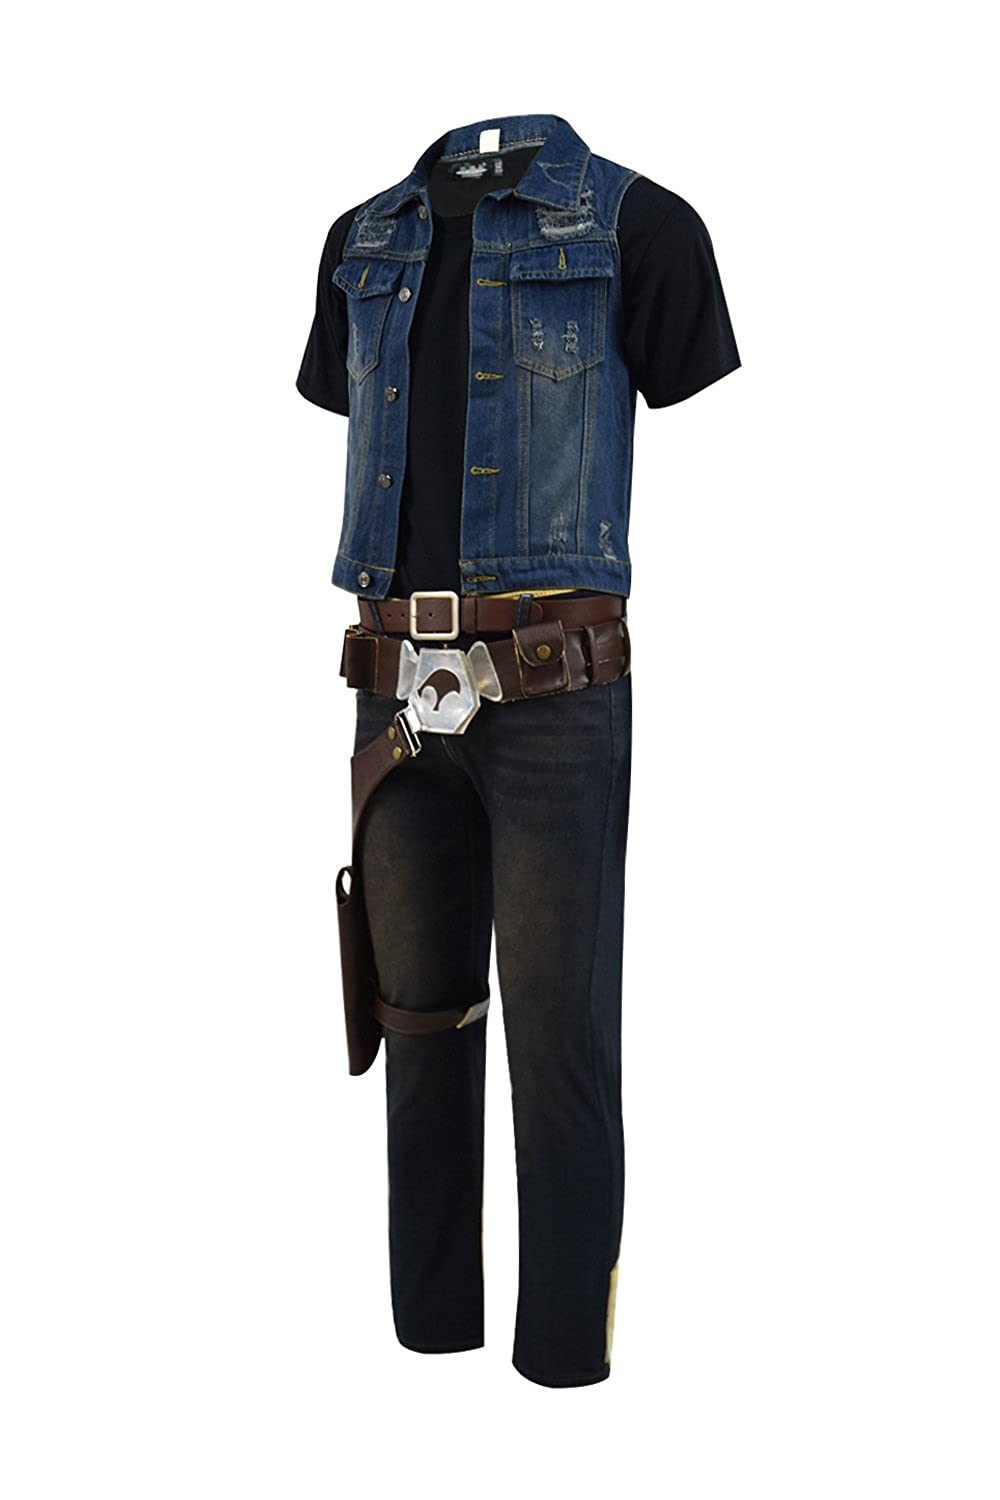 a43347d2903eb Amazon.com: TISEA Parzival Wade's Jean Vest Extra Life Coin Props  Accessories Collections: Clothing